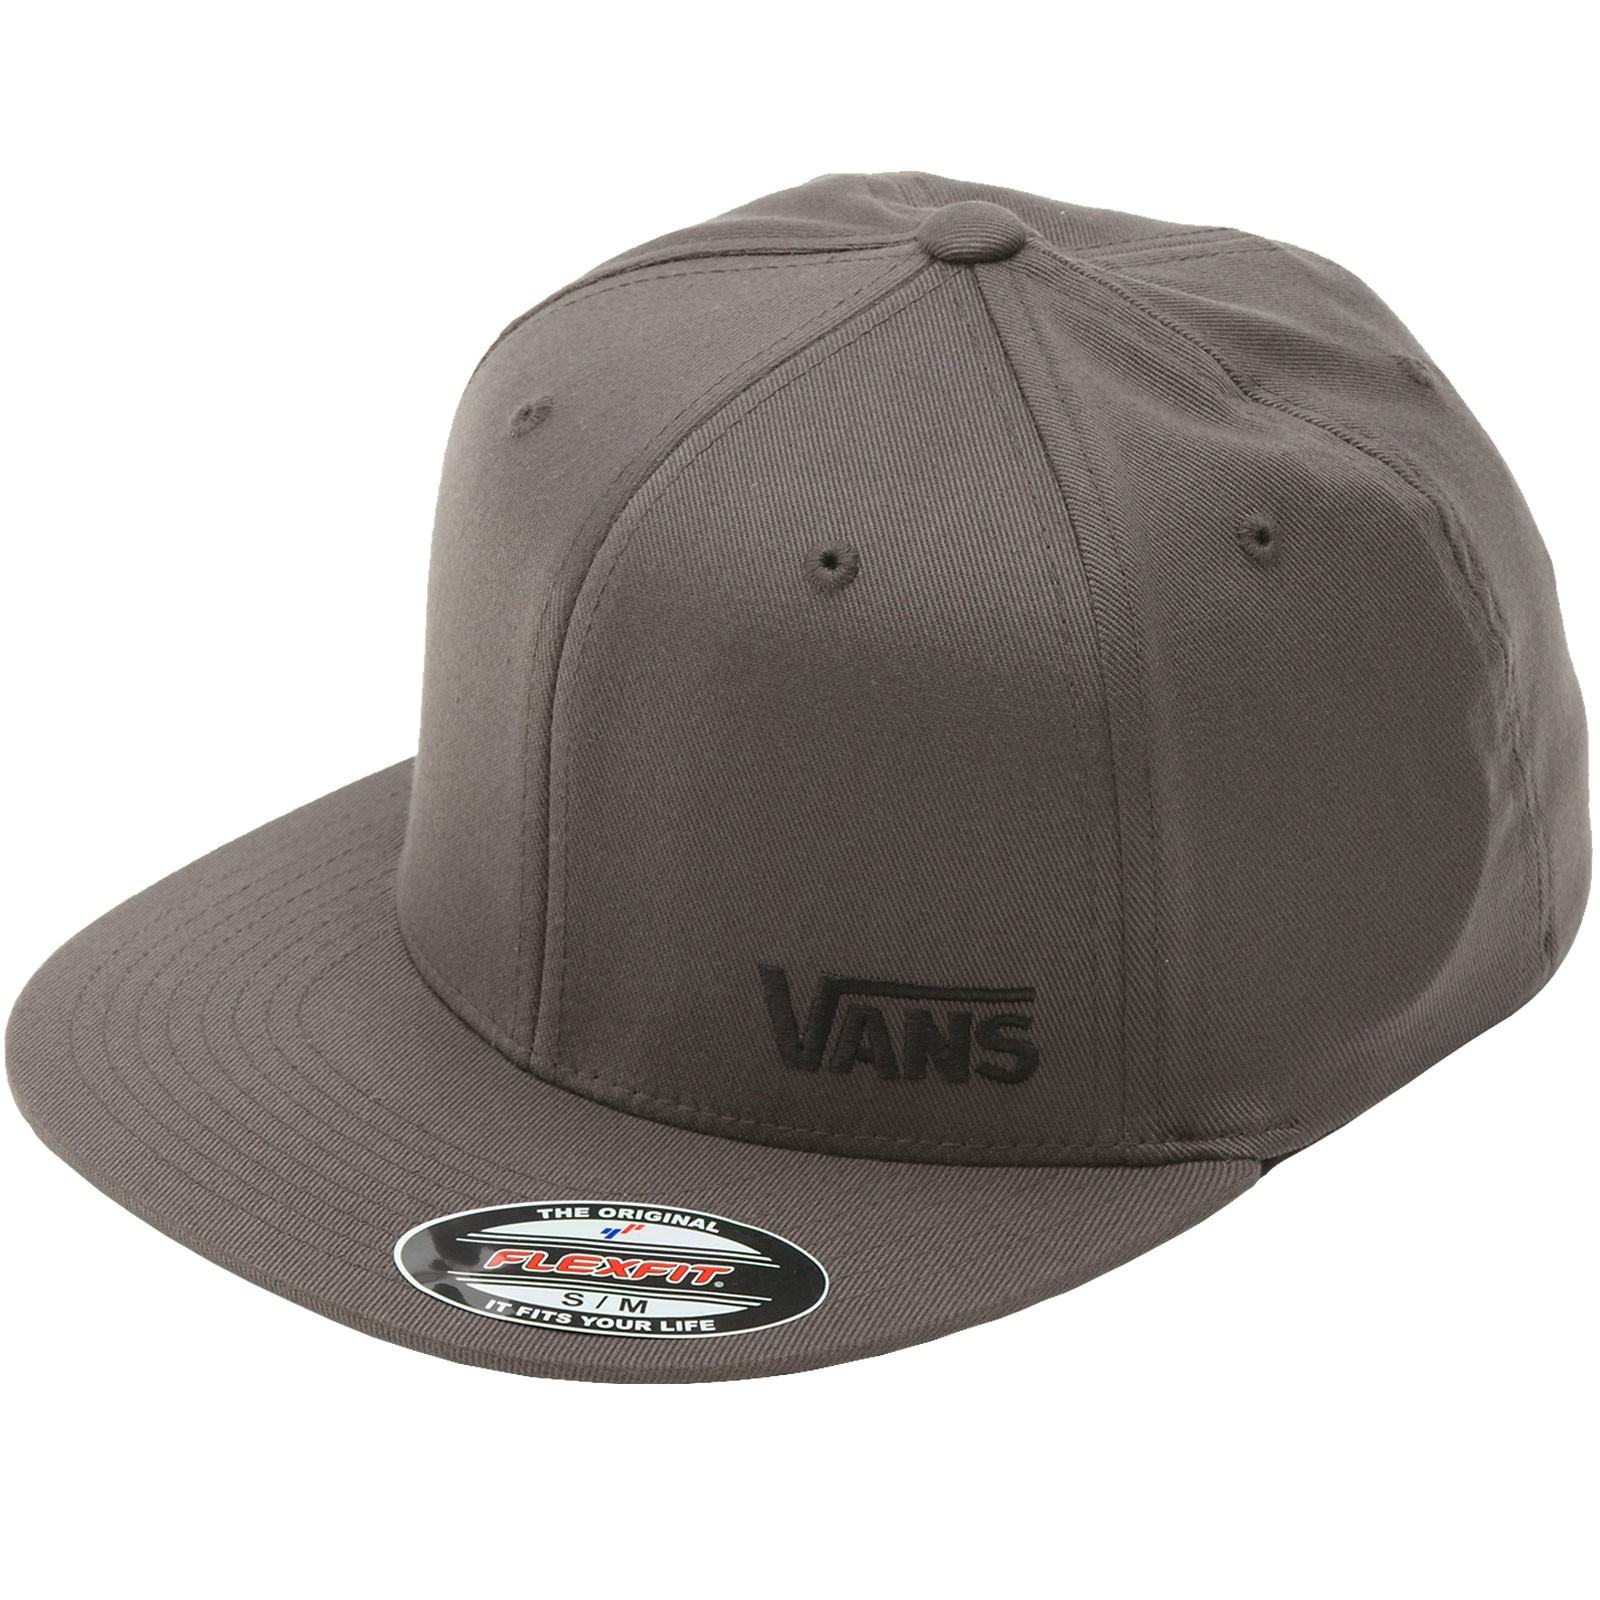 Vans Splitz Flexfit Hat - Charcoal